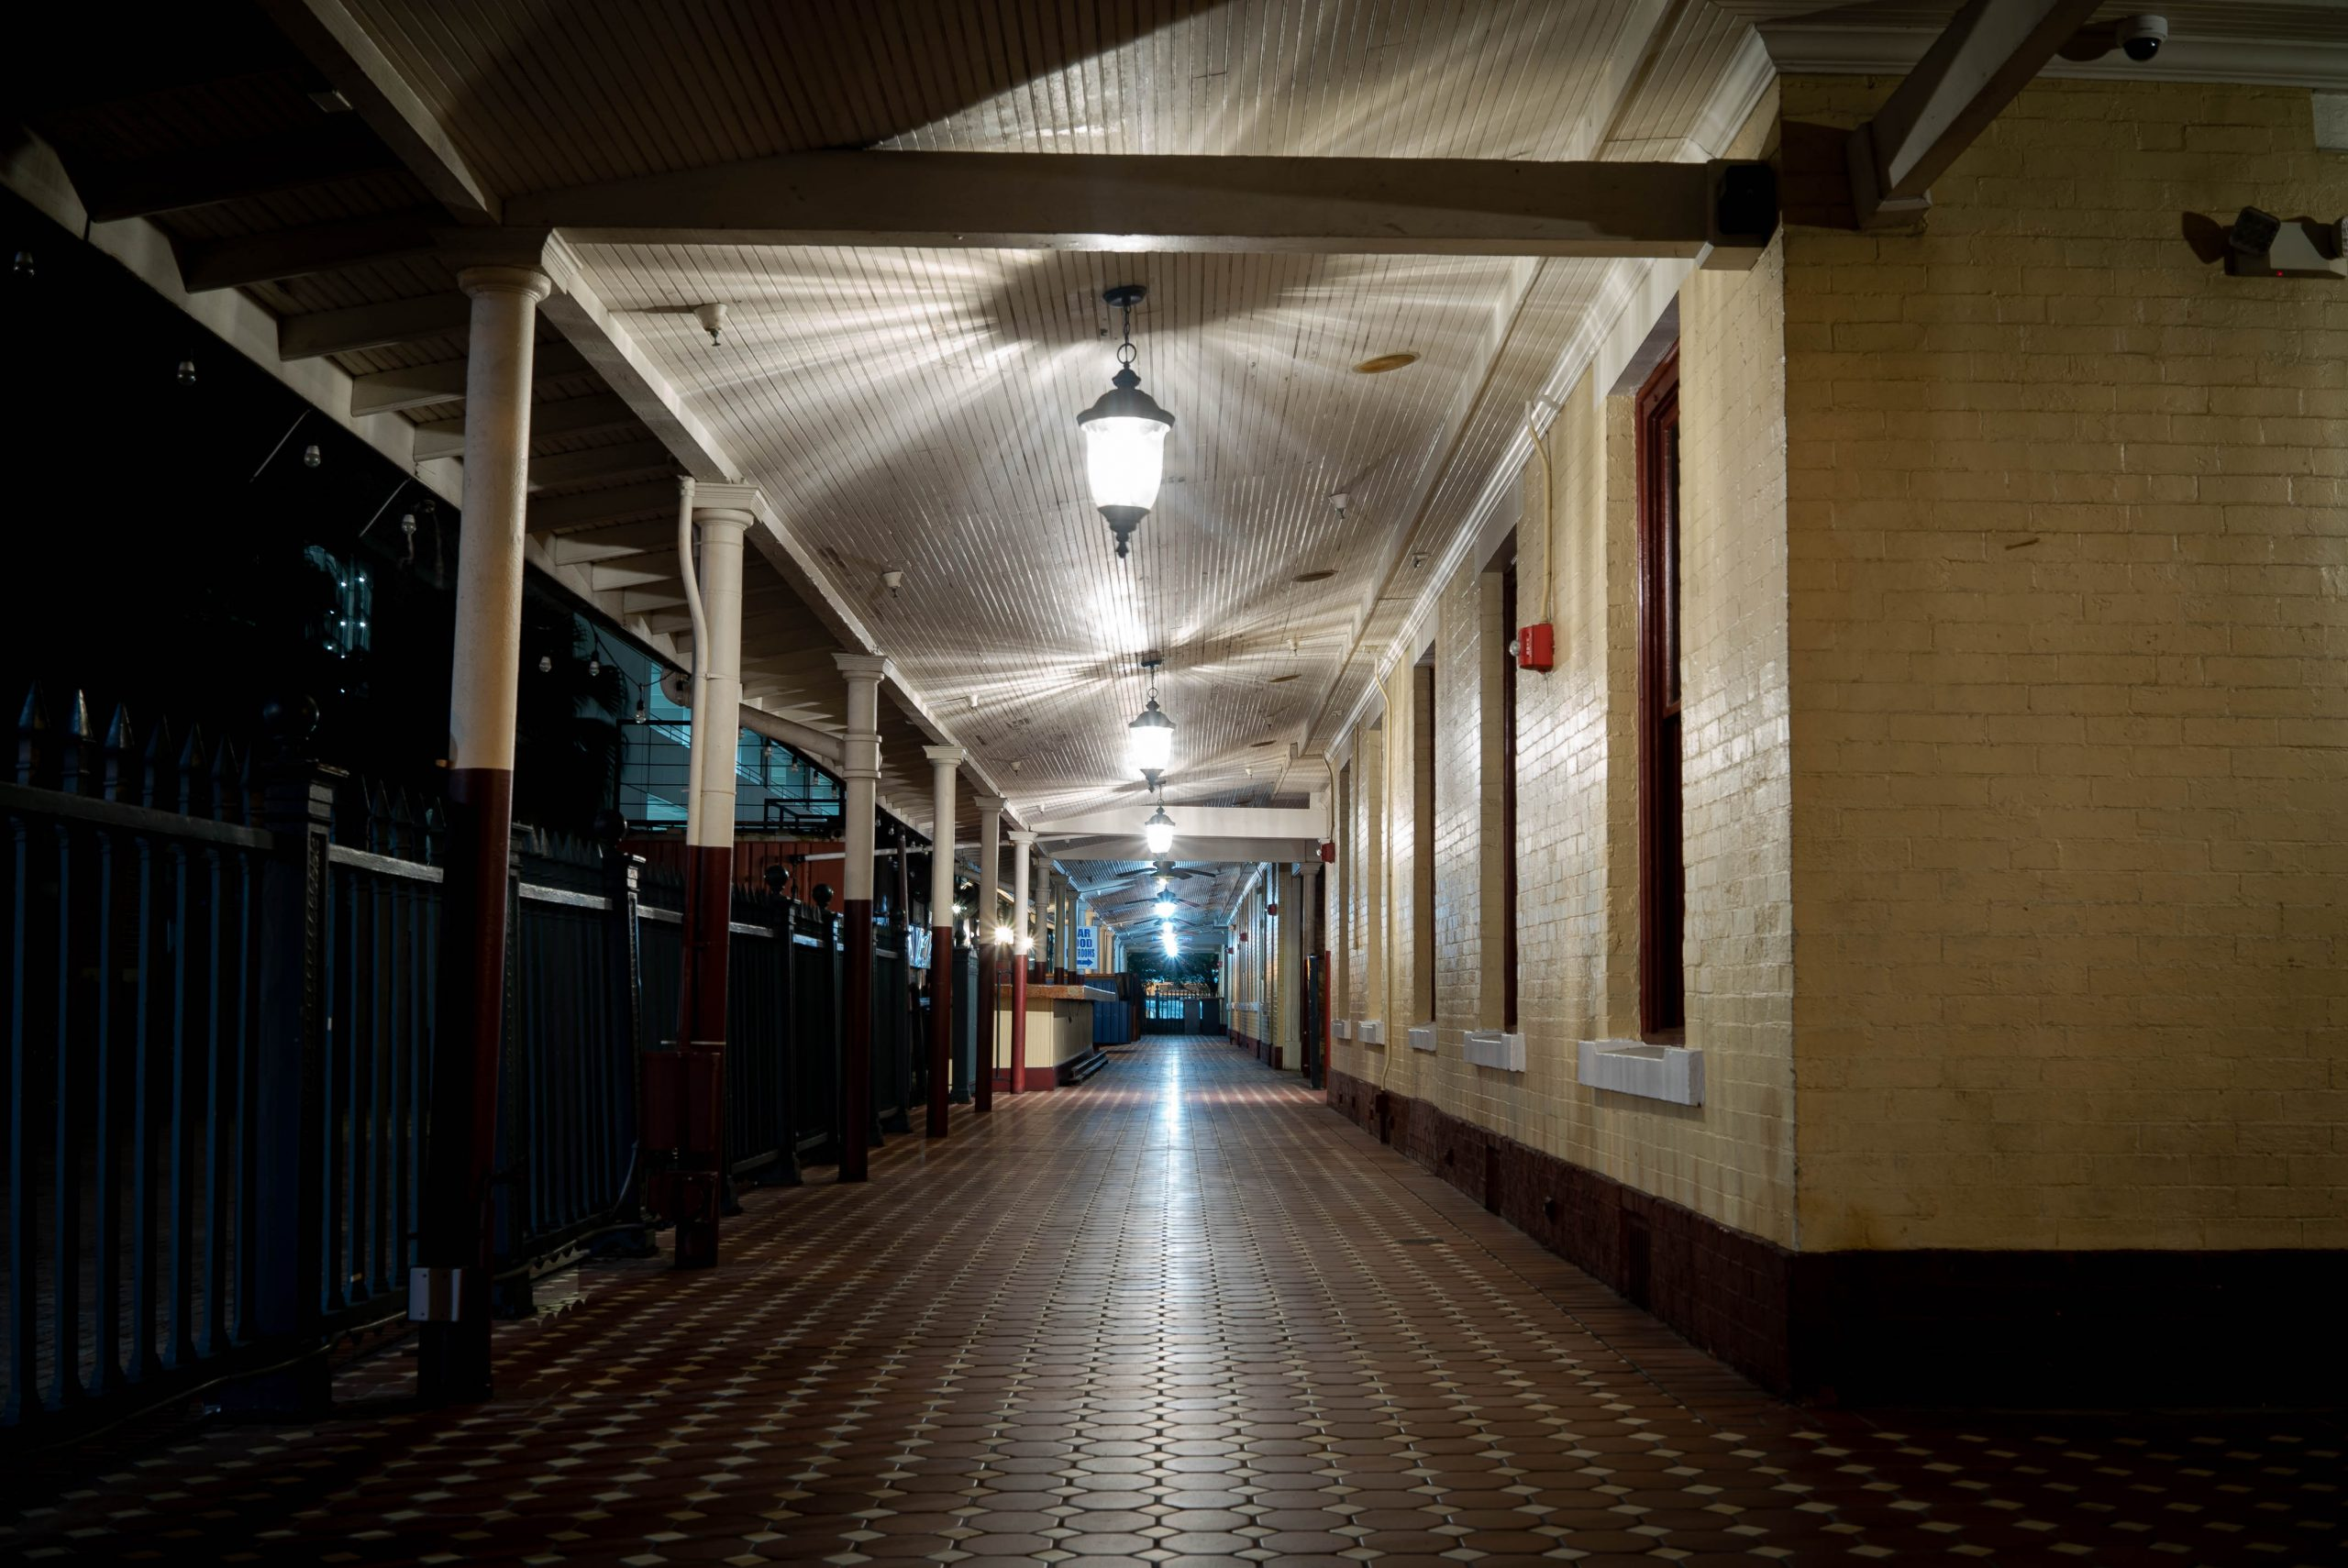 A night time photograph looking down a tiled station platform, the creepy lights make star patterns on the ceiling, they don't illuminate the ghosts that haunt Orlando Old station